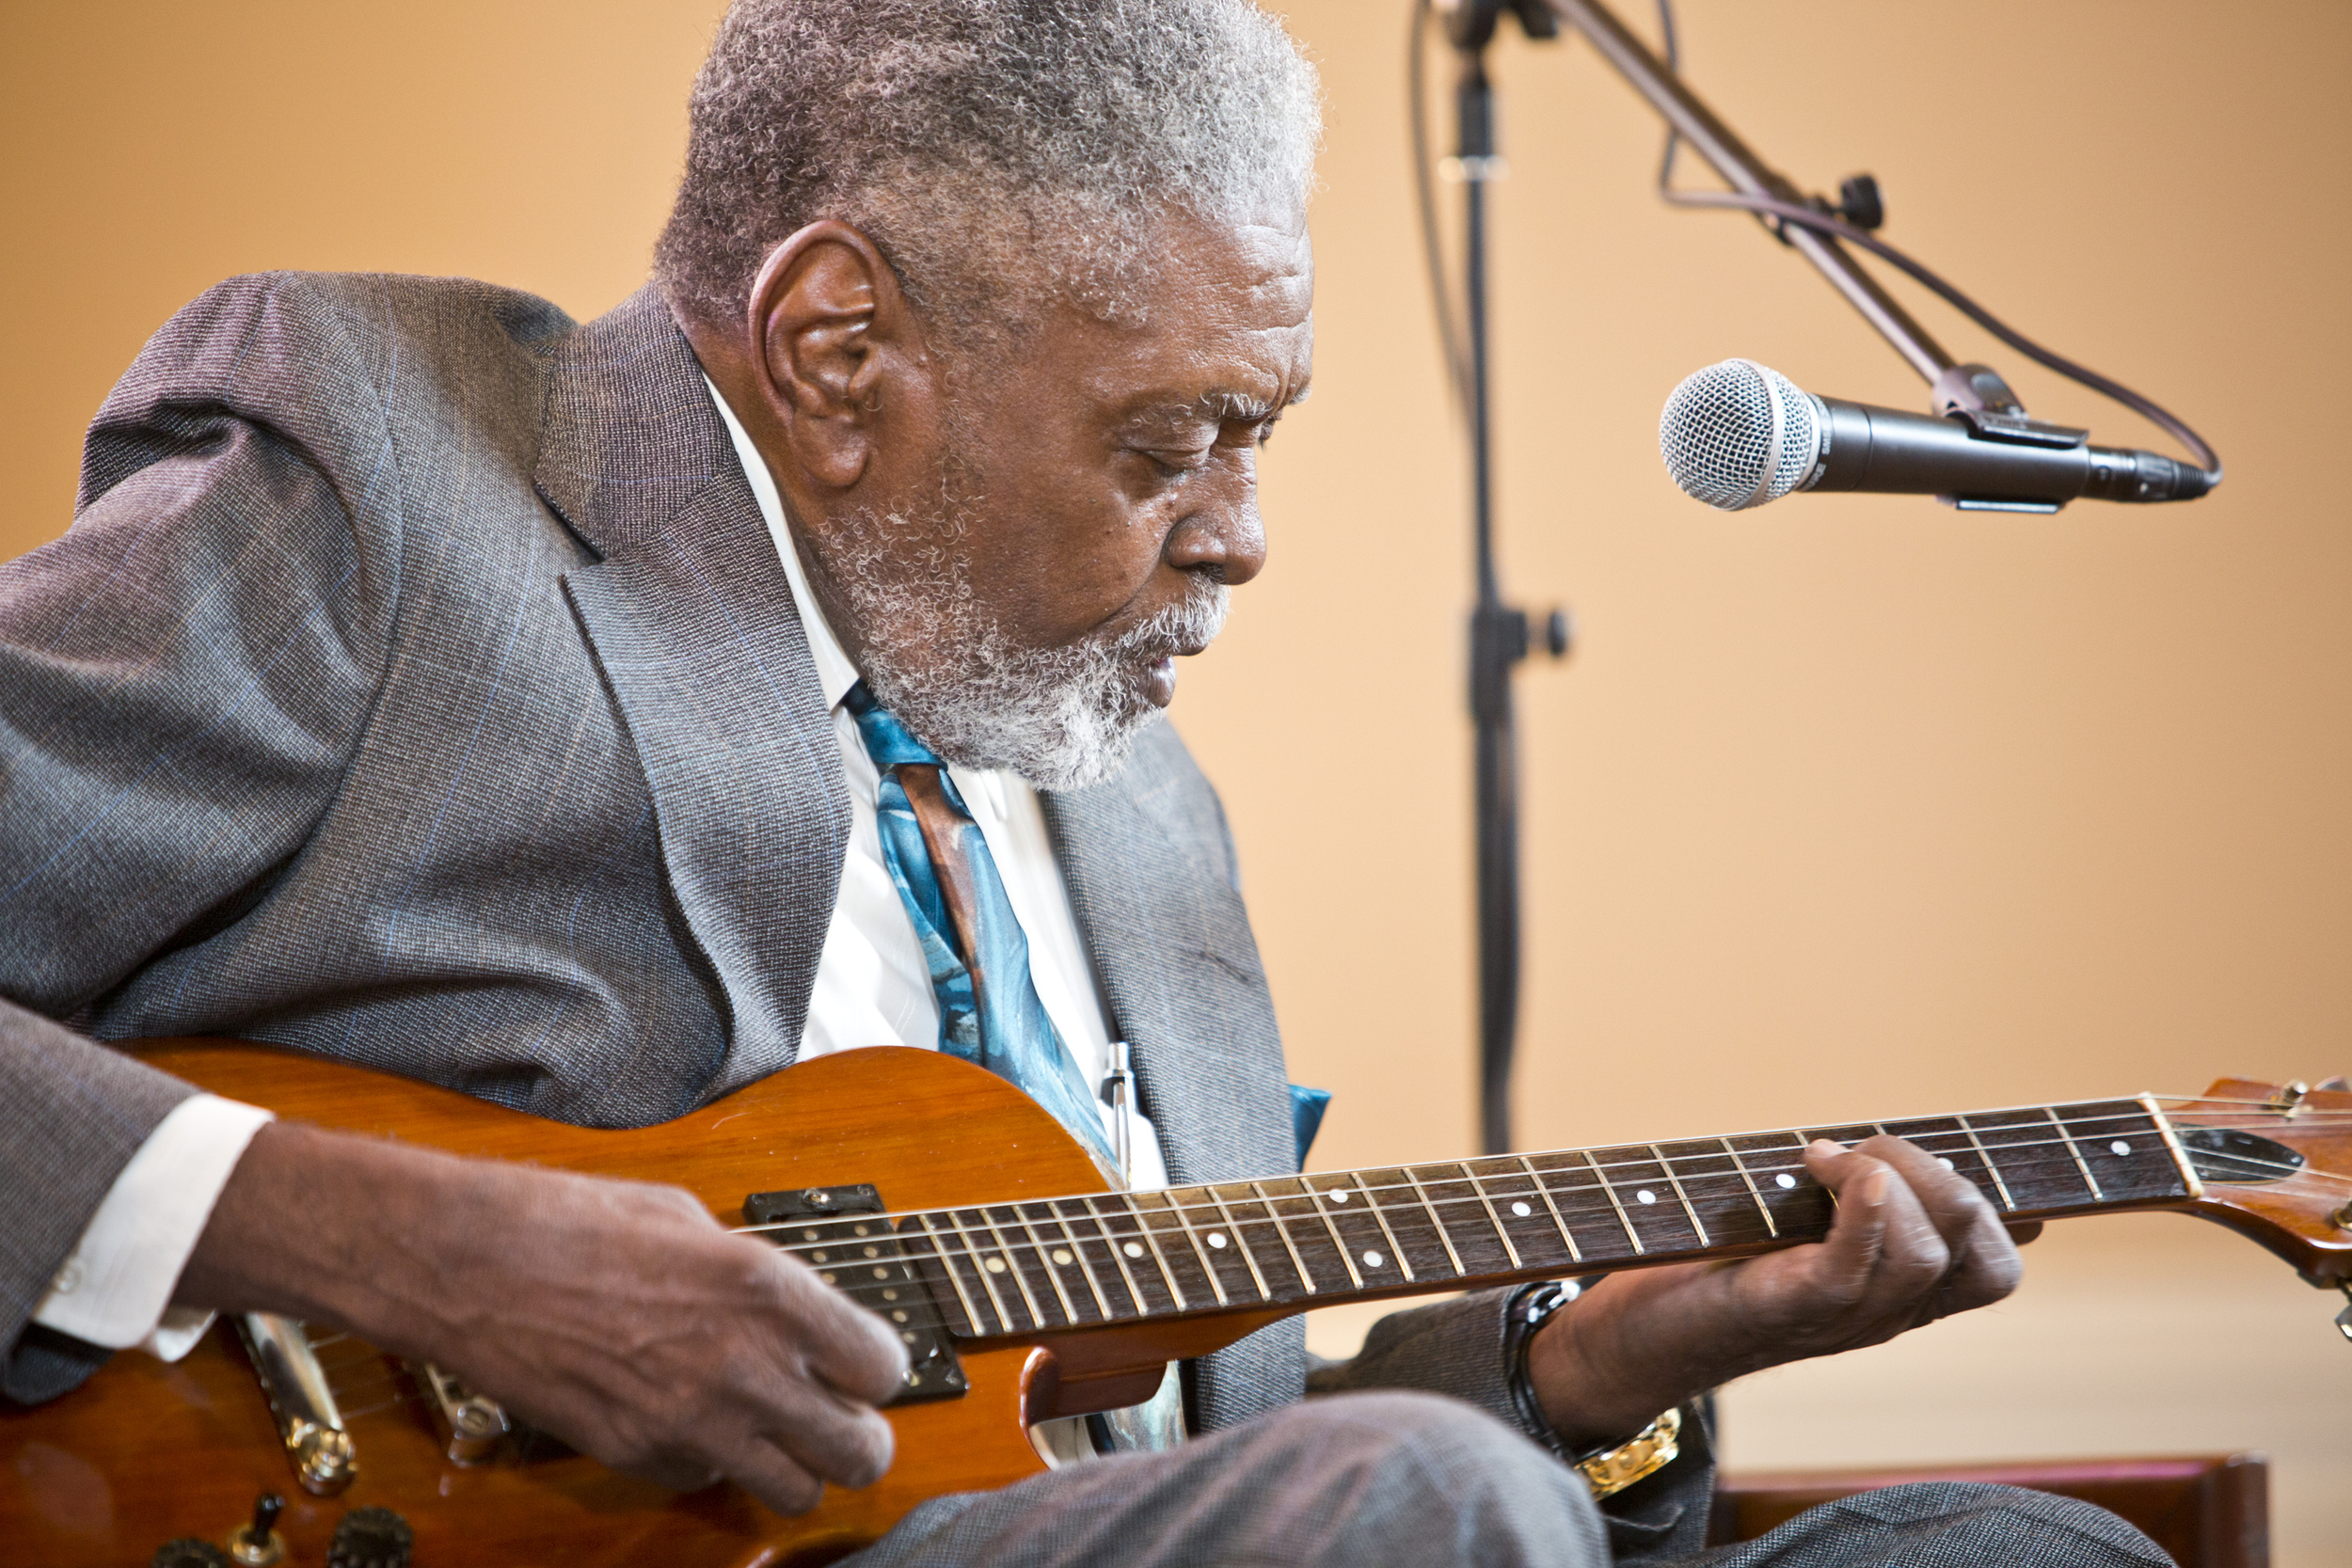 Jimmy Dotson during Backstage at the Blues Fest in 2014